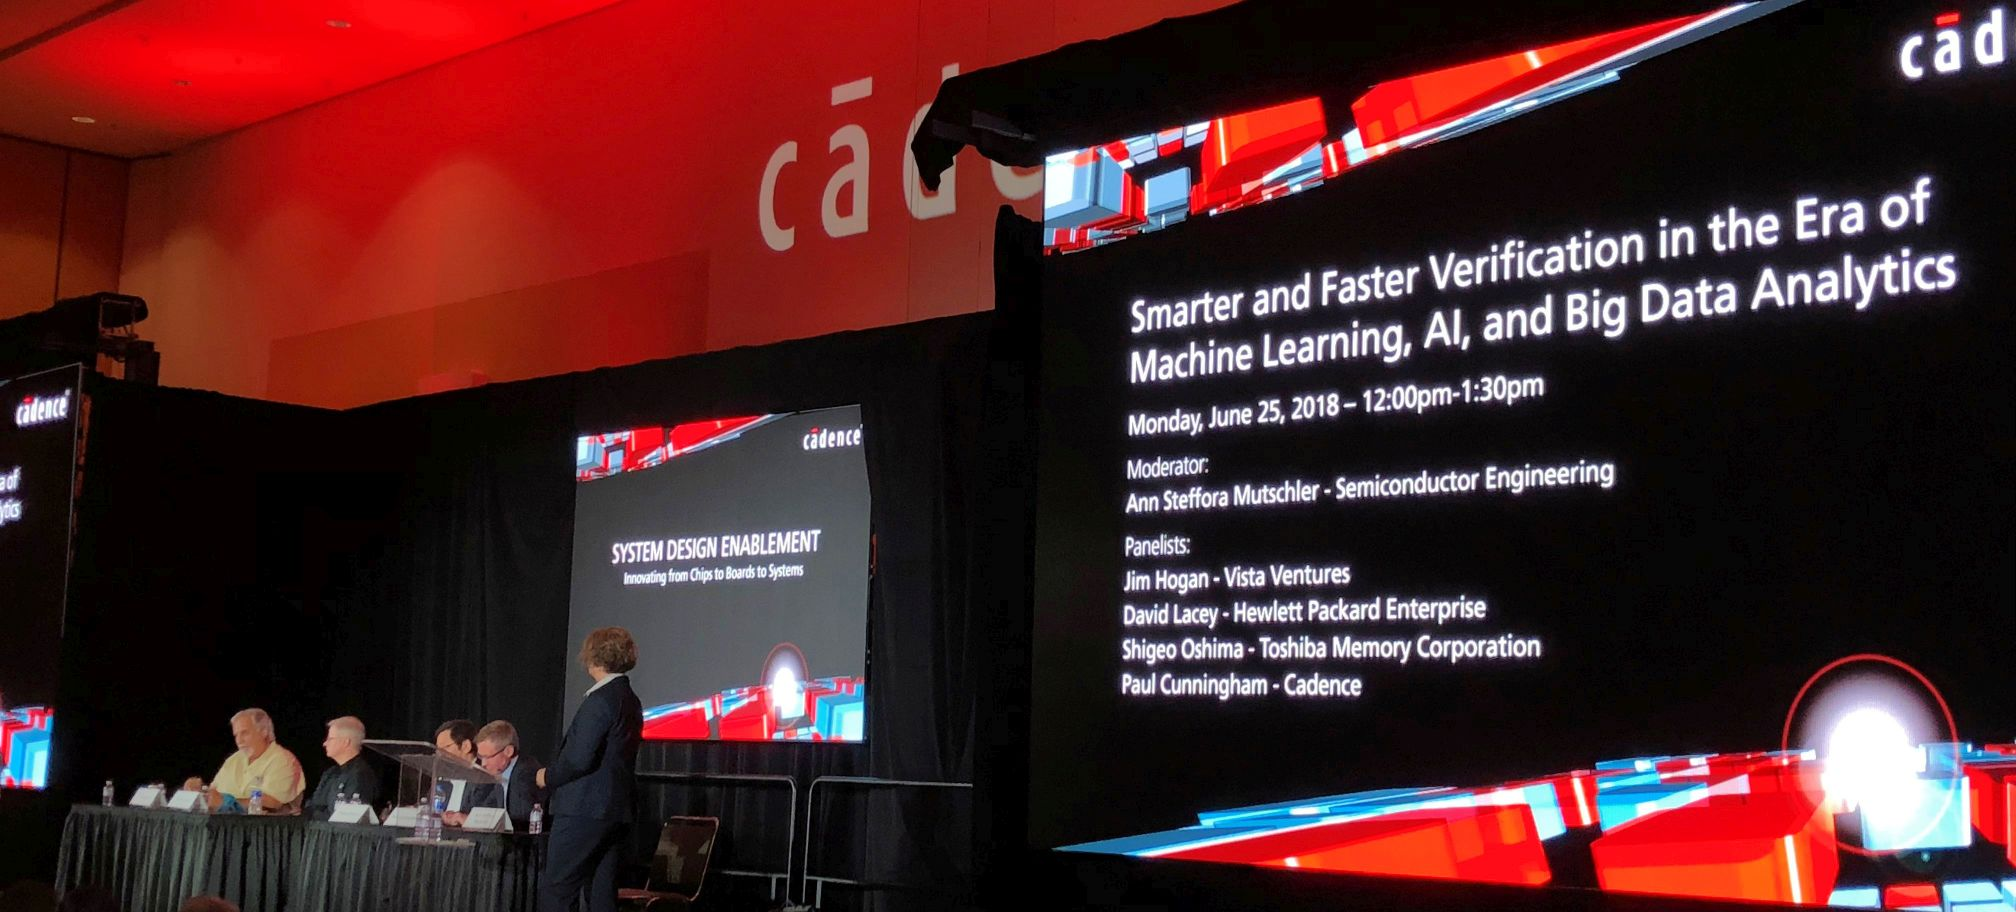 DAC 2018: System Design, Cloud And Machine Learning